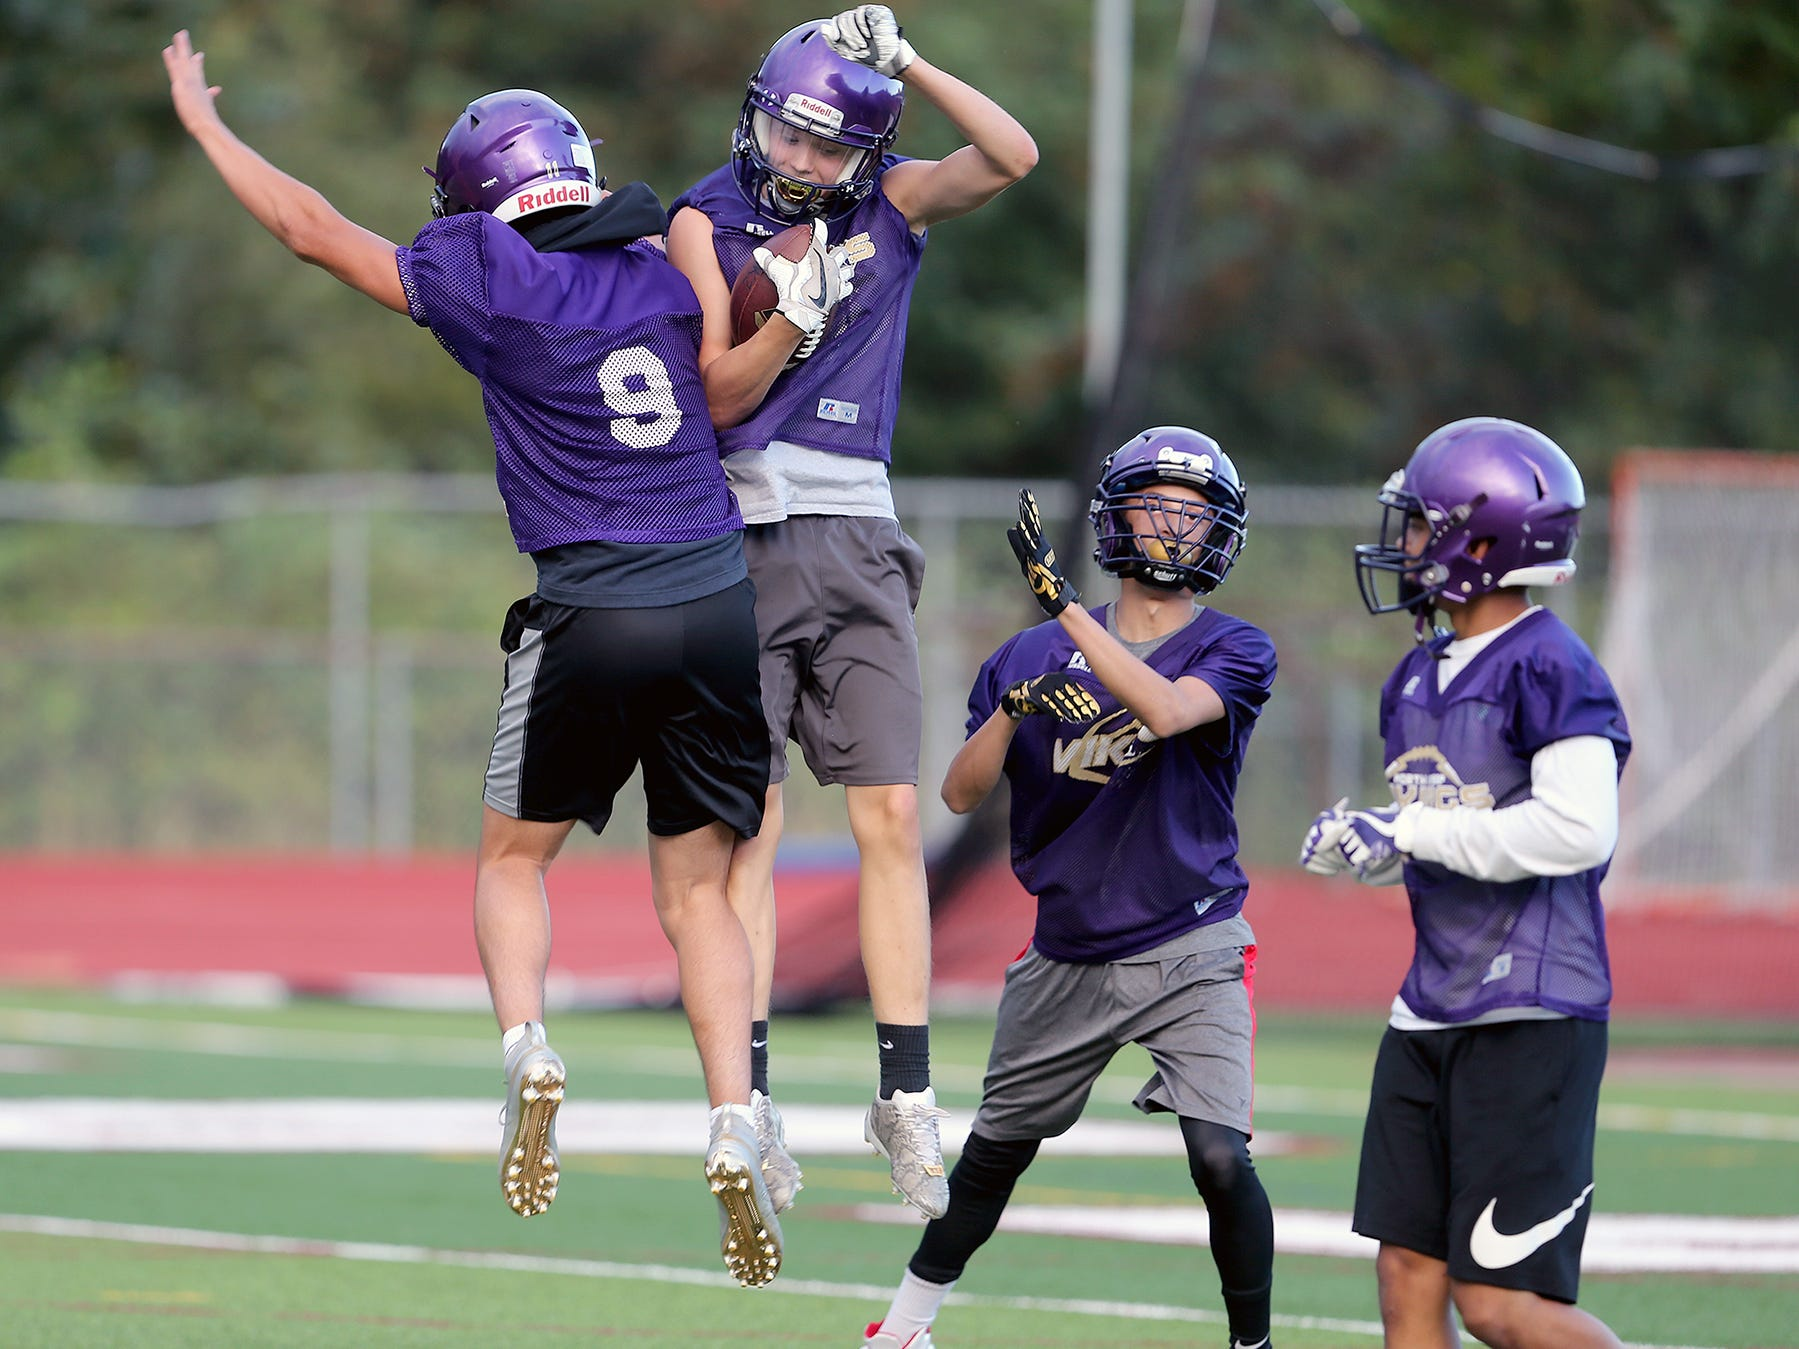 North Kitsap touchdown at the 7 on 7 football at South Kitsap High School in Port Orchard on Wednesday, July 18, 2018.